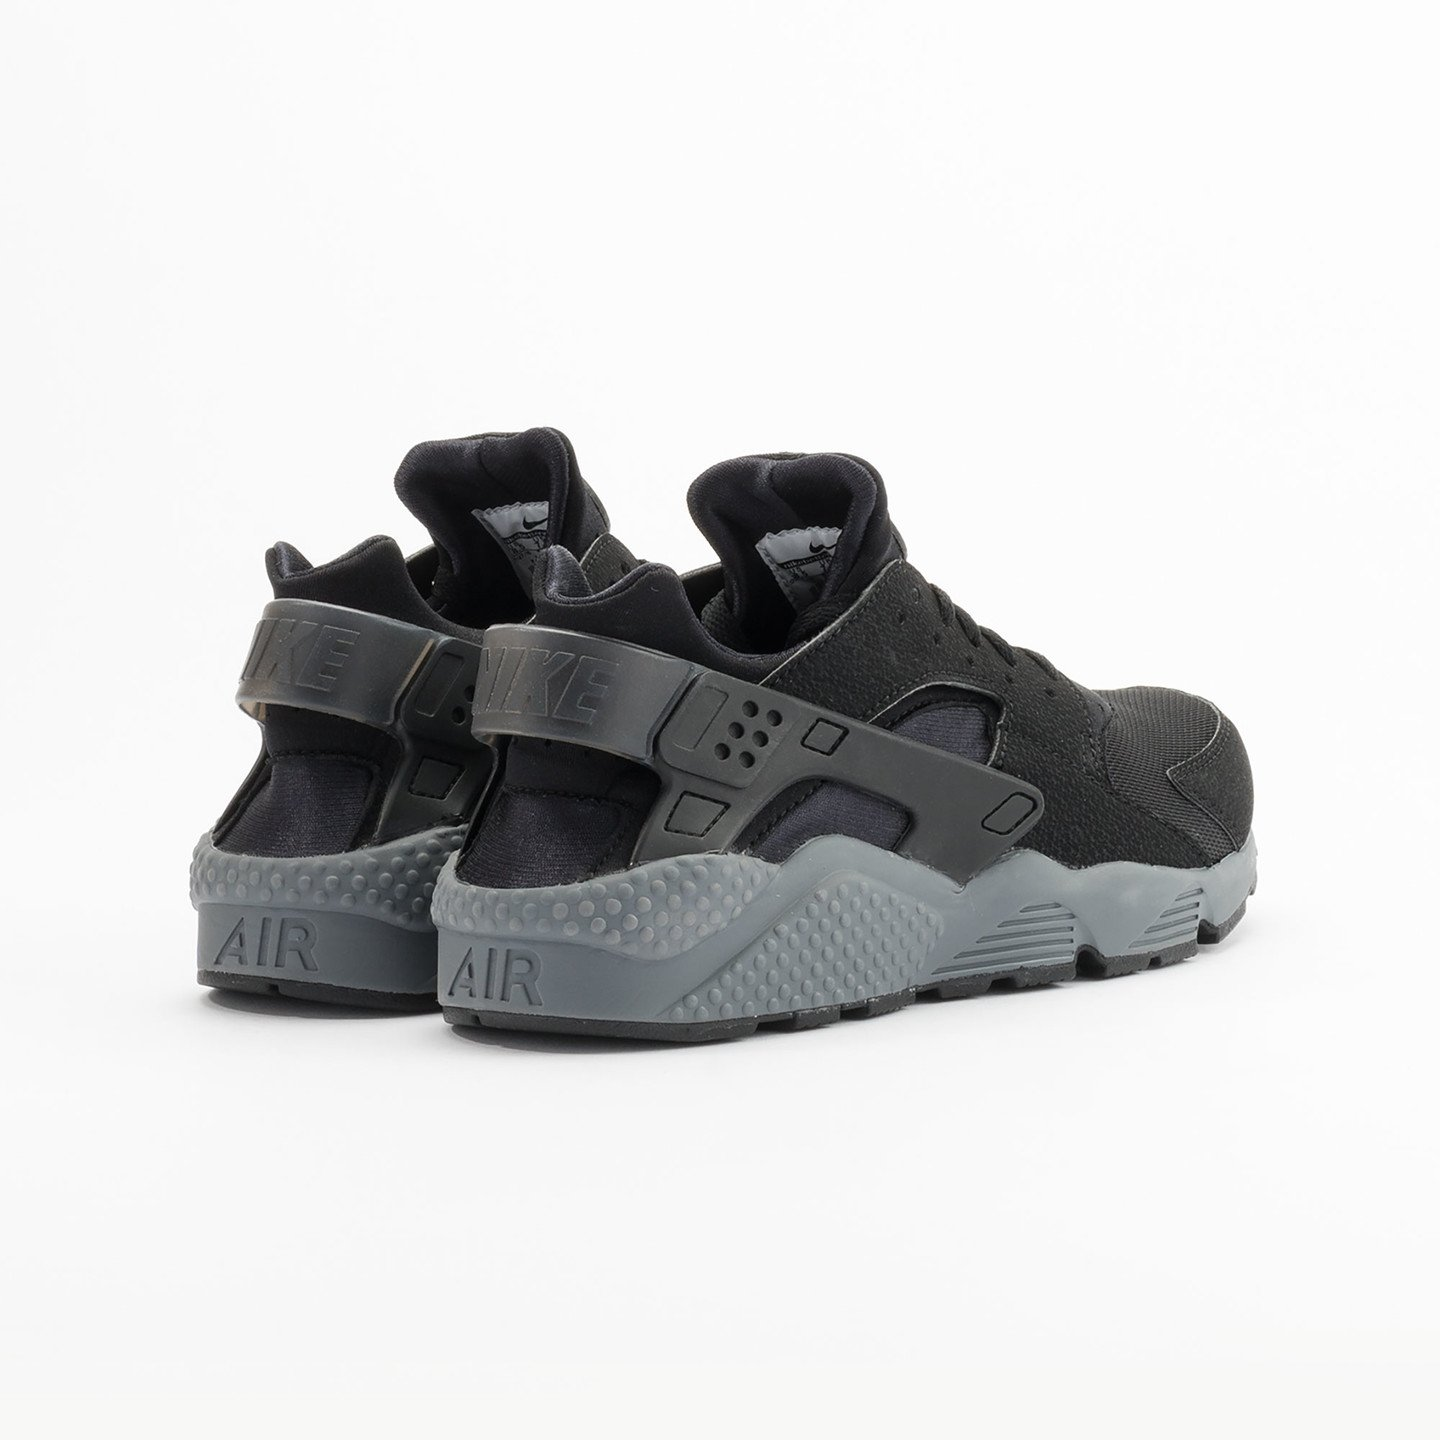 Nike Air Huarache Black / Dark Grey 318429-010-44.5